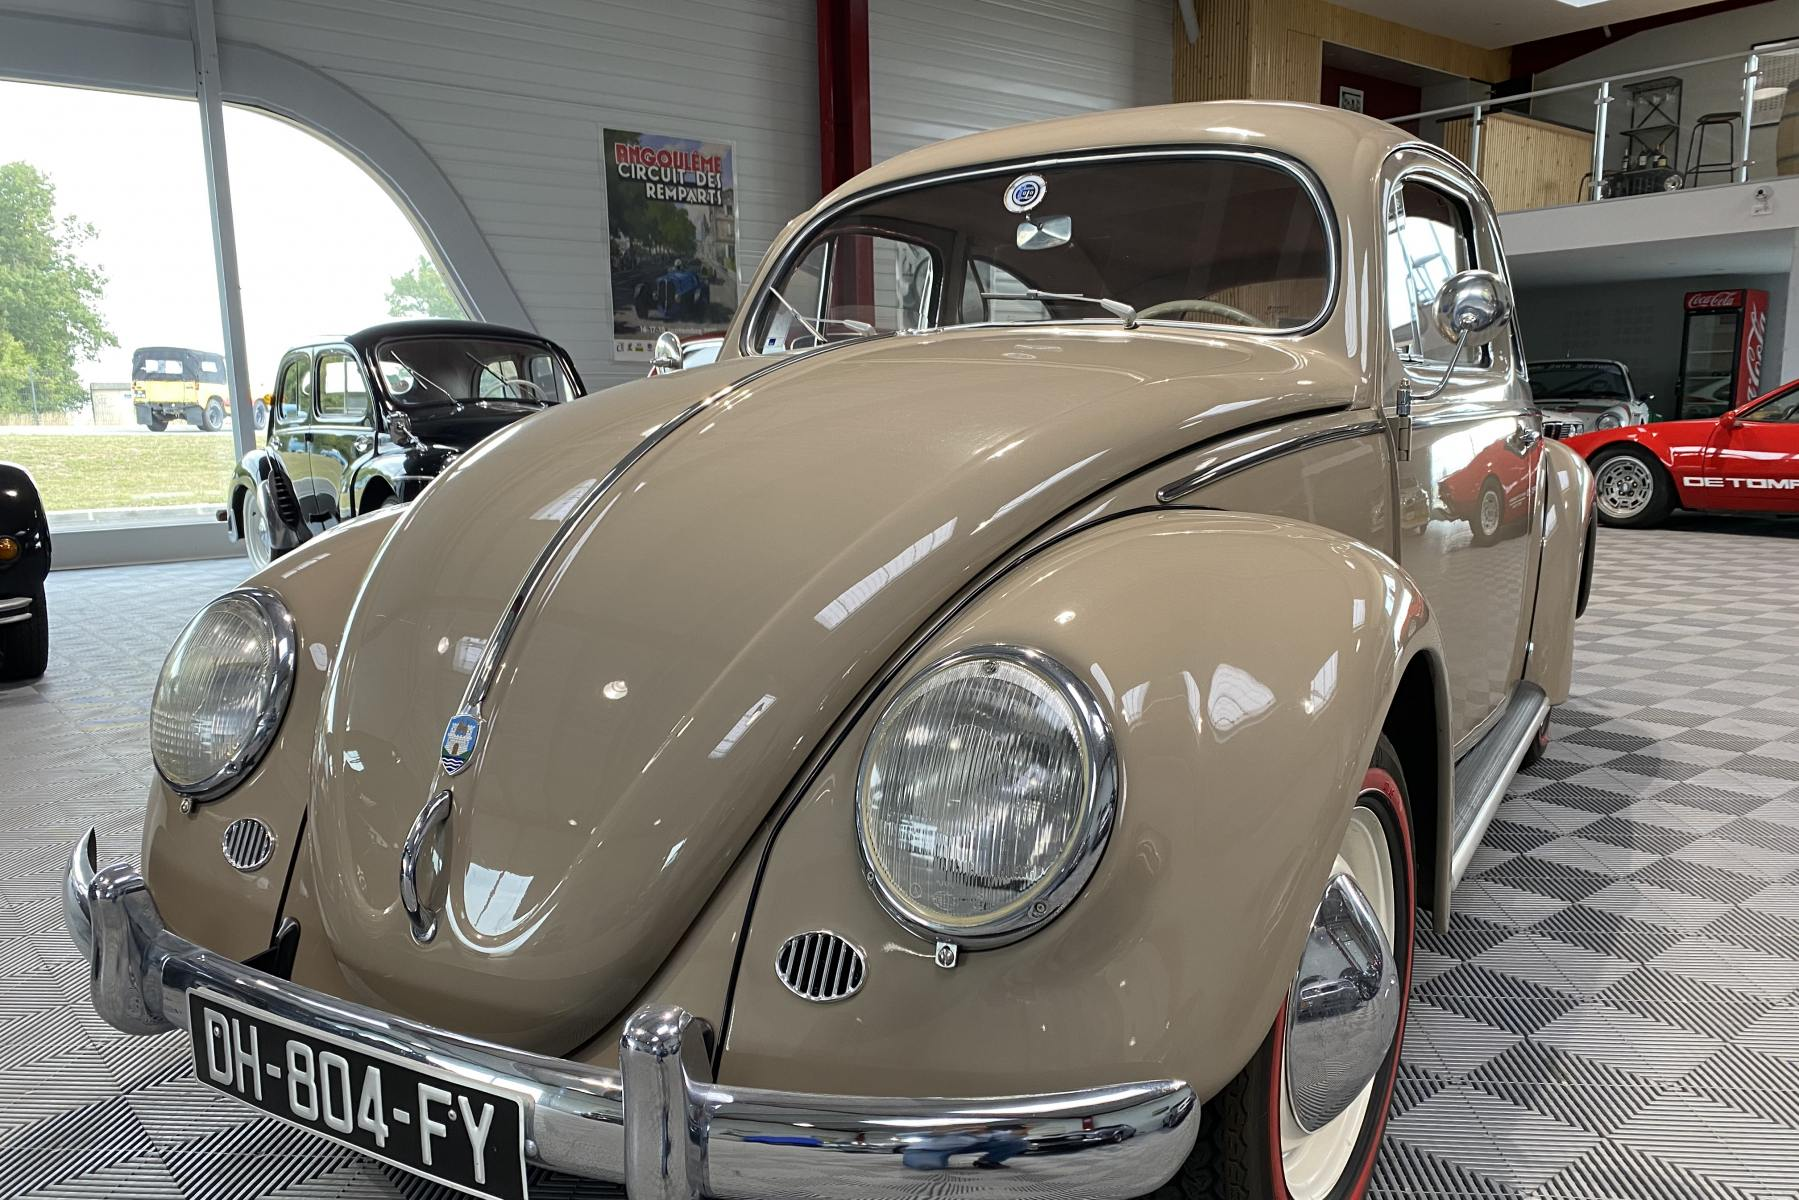 Vente-annonce-Volkswagen-Ovale Old Speed-classic-auto-restor